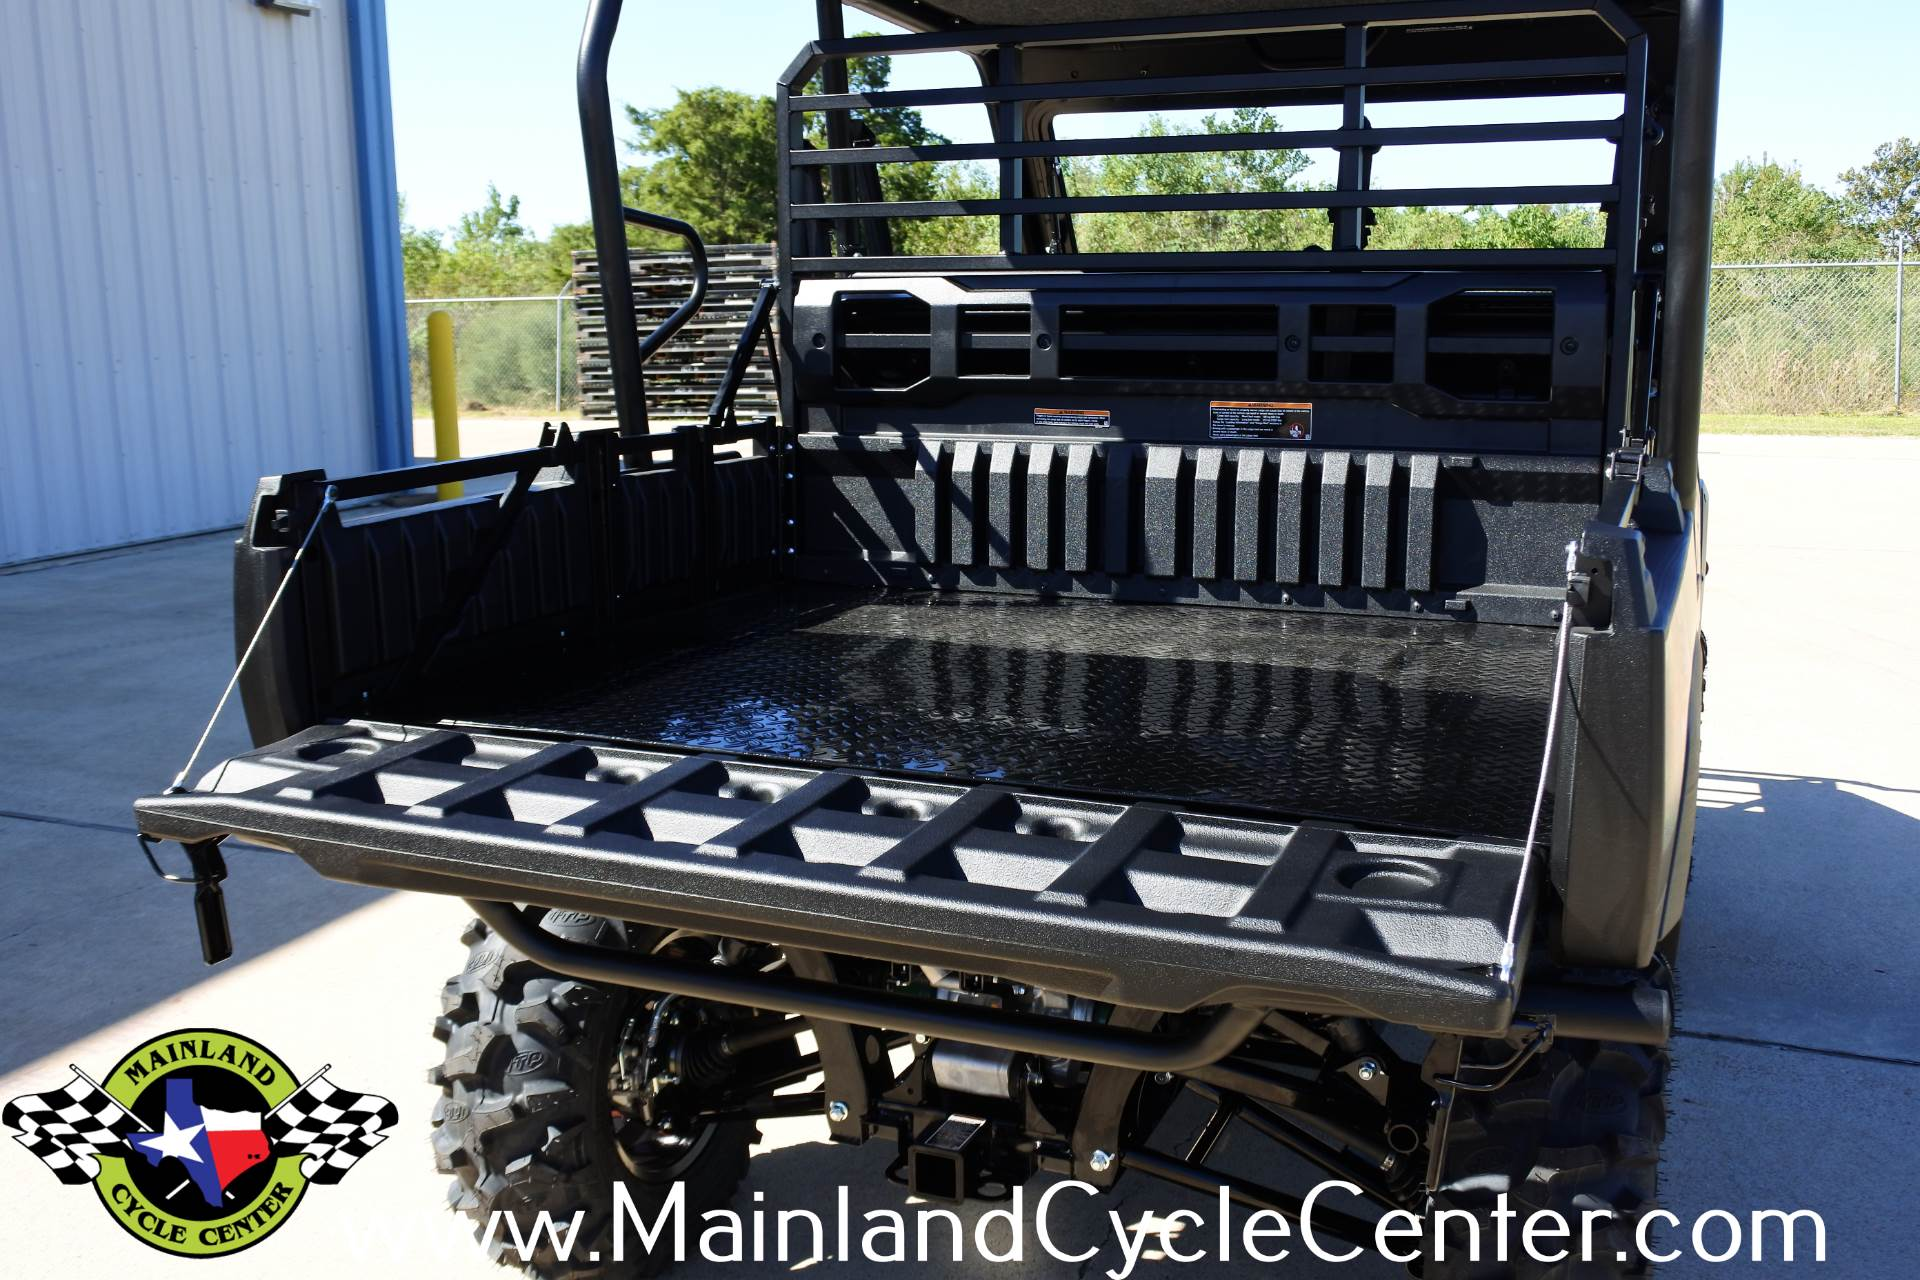 2018 Kawasaki Mule PRO-FXT EPS Camo in La Marque, Texas - Photo 33